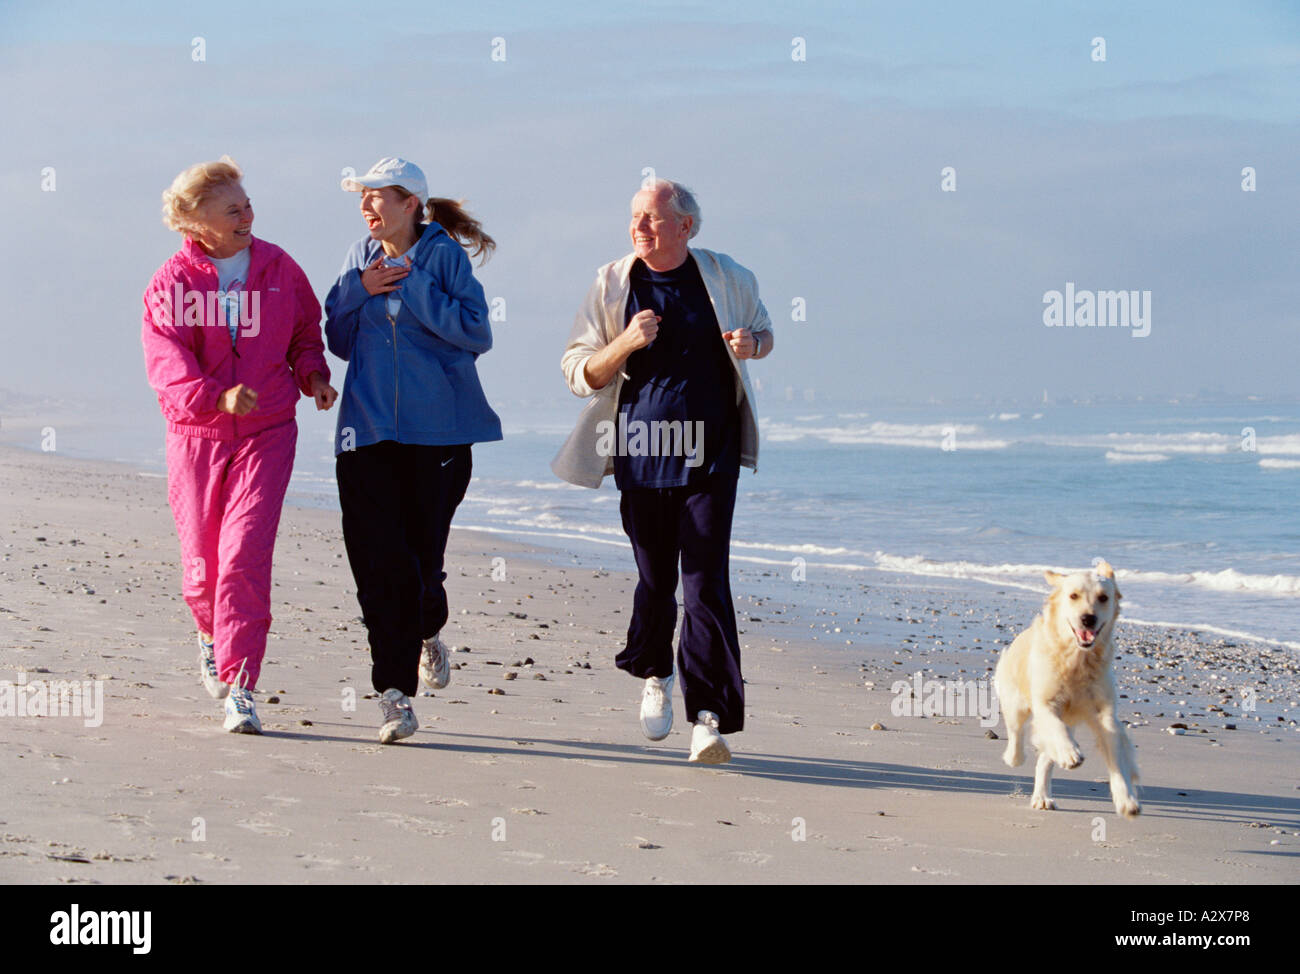 Adult group of three people with their dog running along a beach. Stock Photo